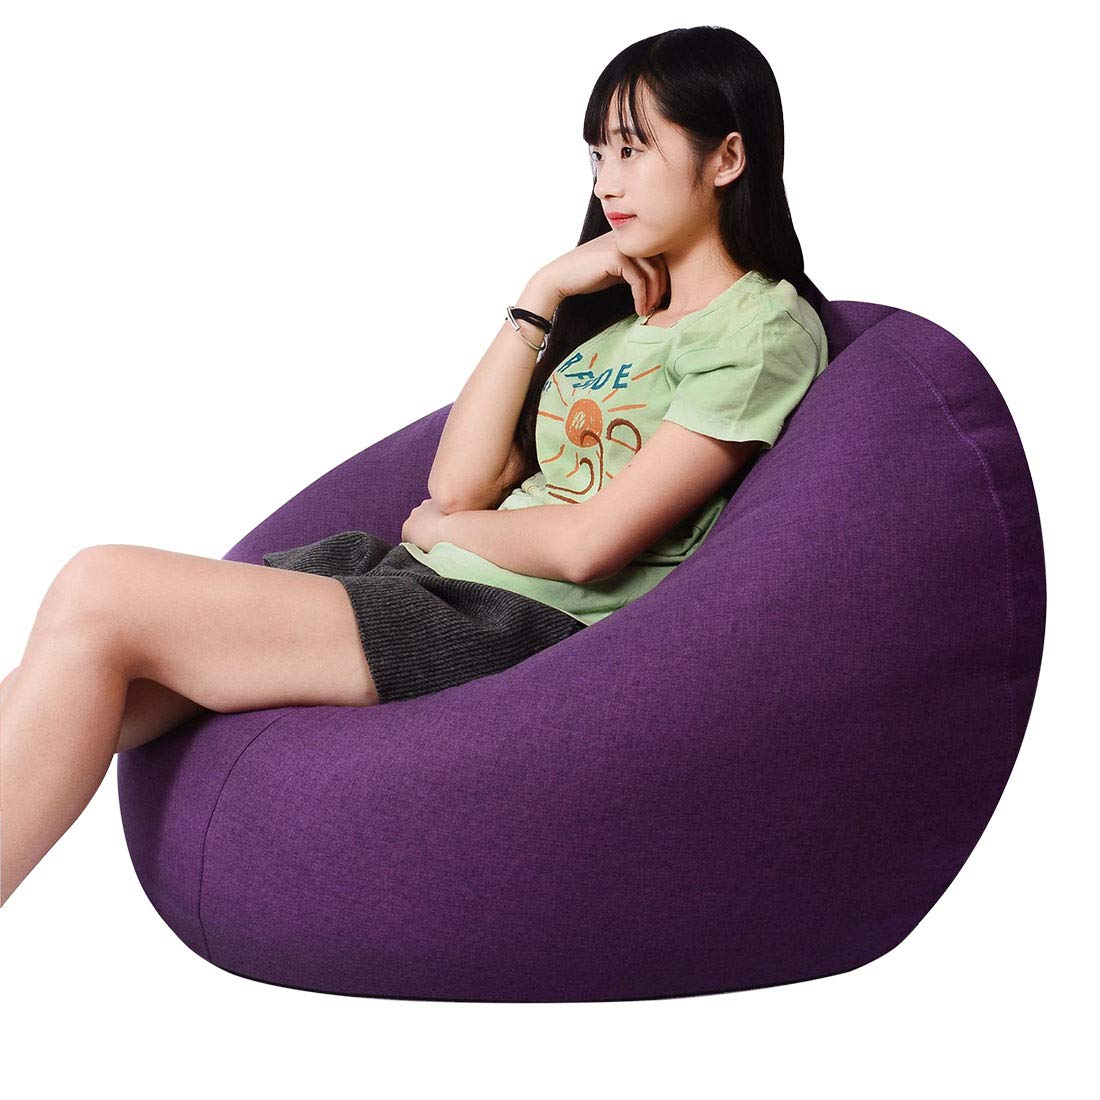 Freahap Bean Bag Chair Lounge Single Seat Sofa Game Chair Memory Foam Filled Couch Removable Cover Blue S